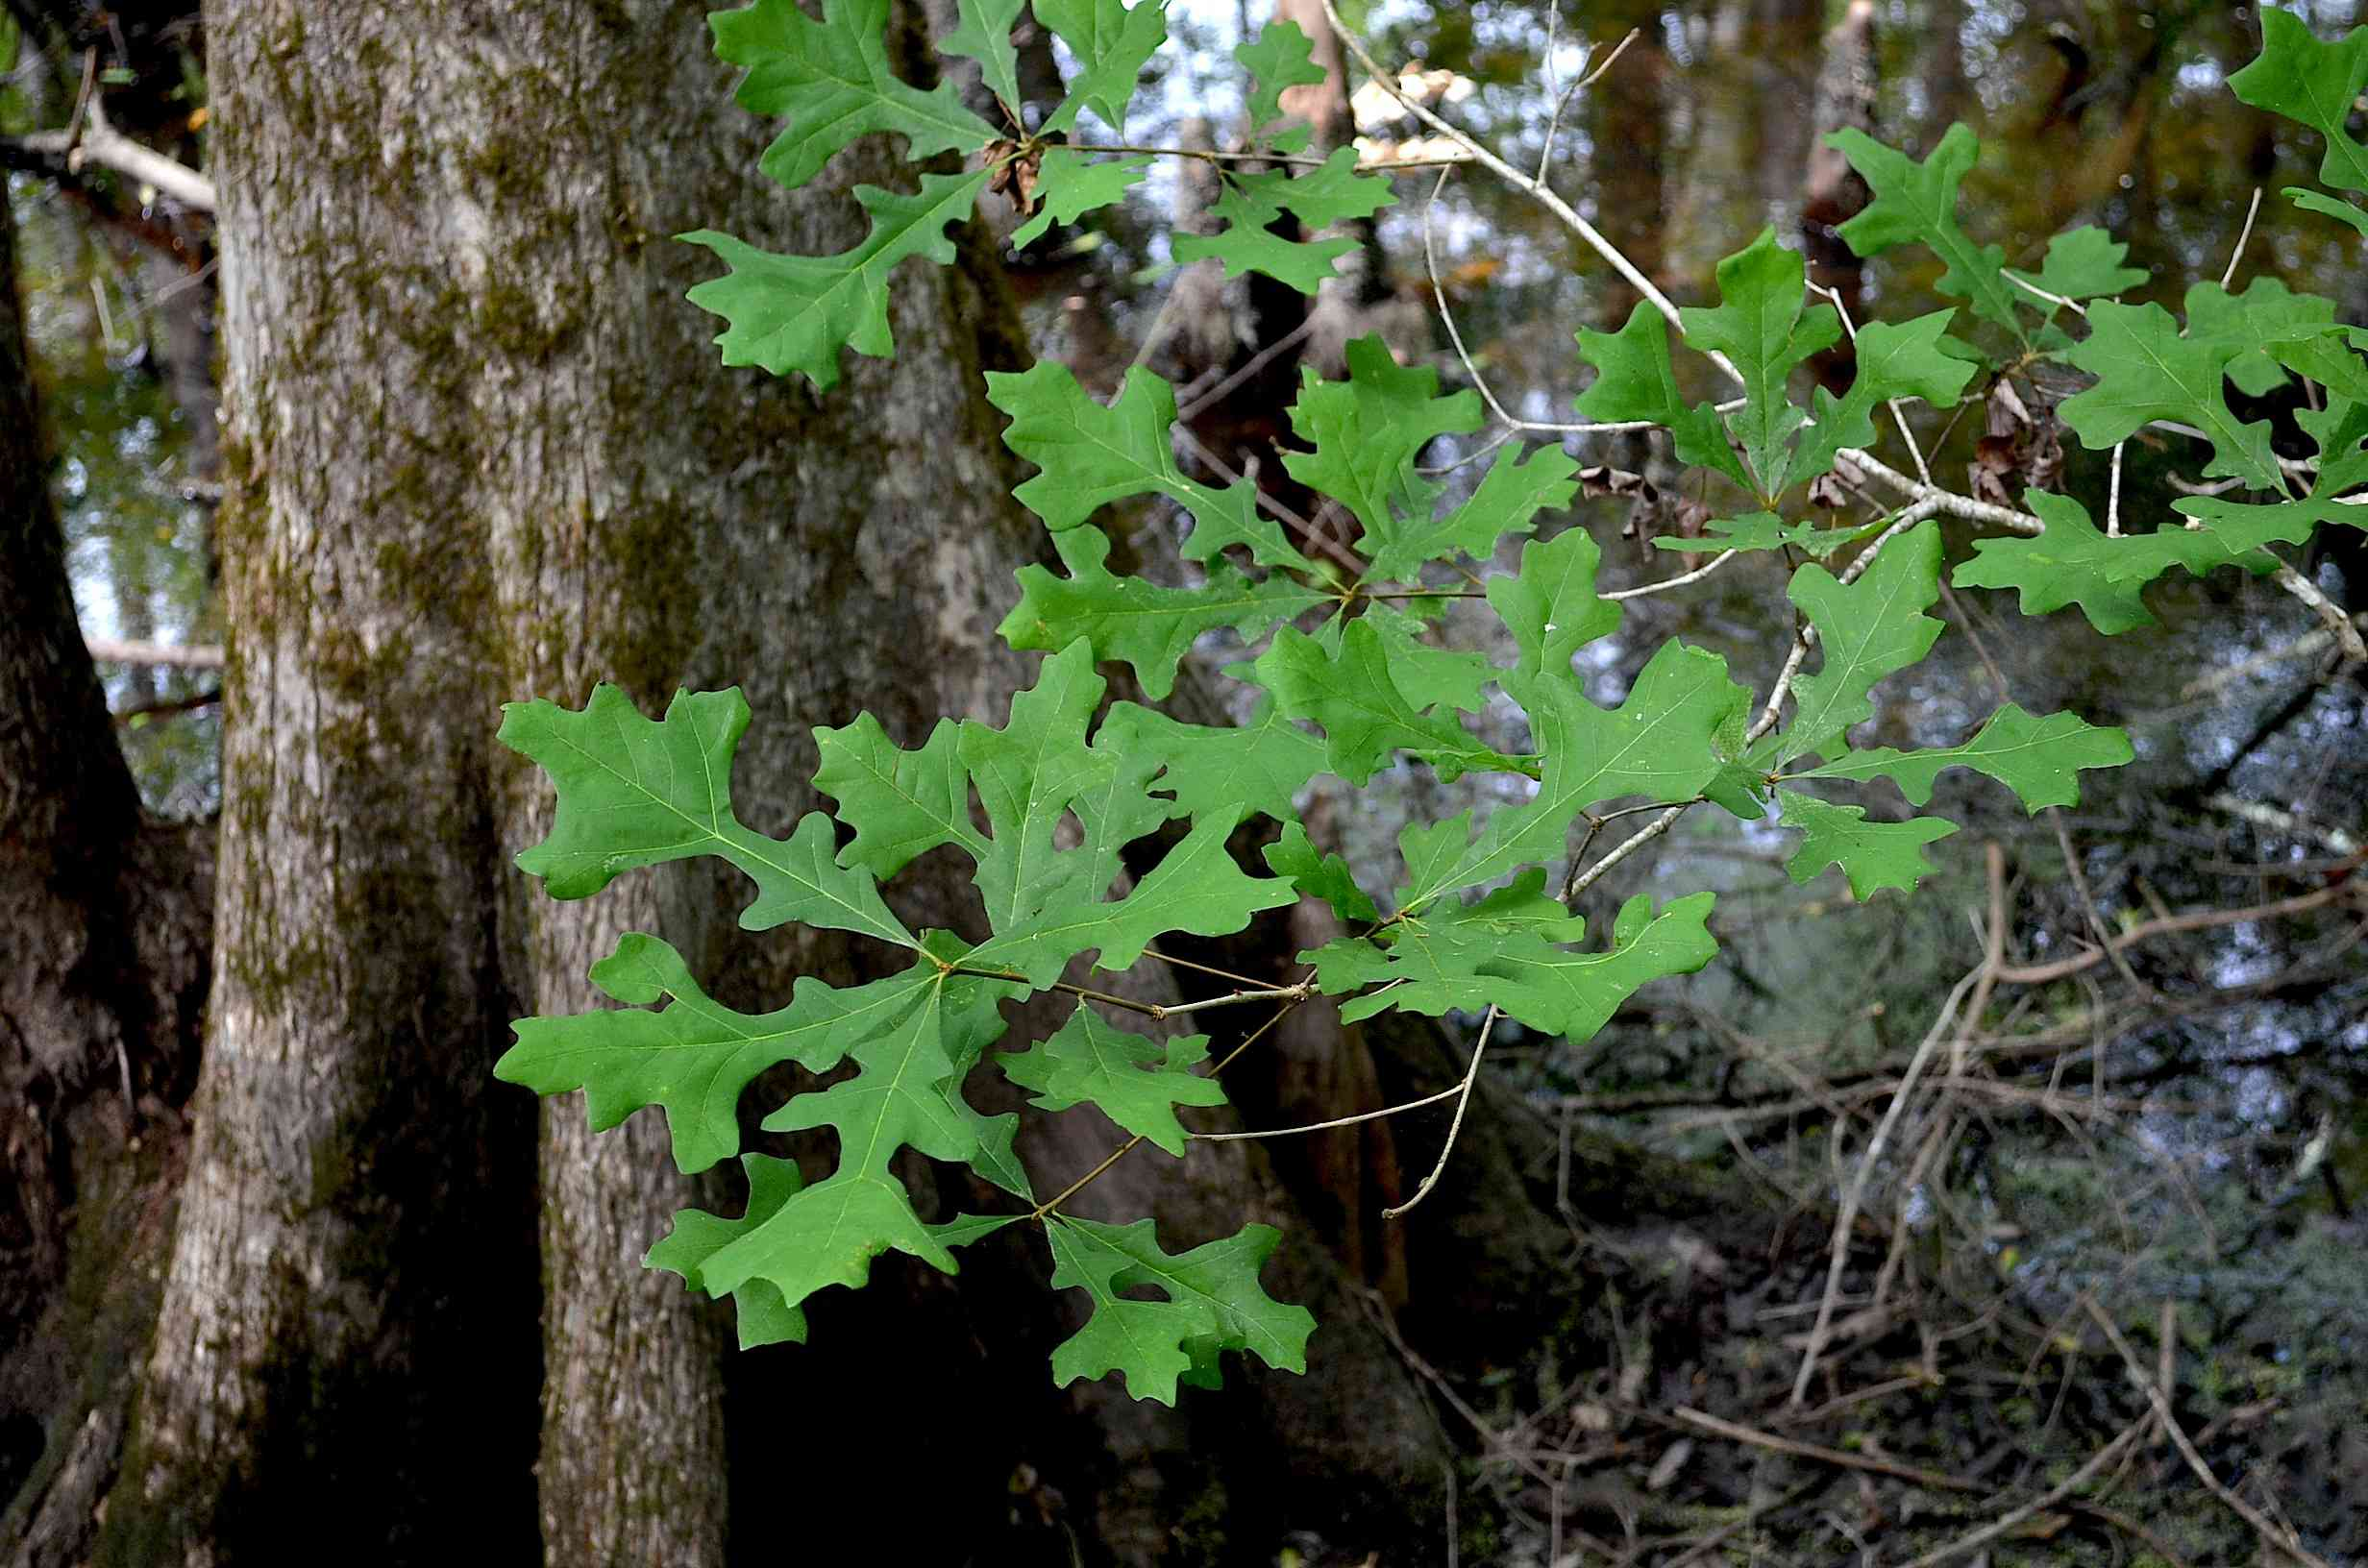 Green leaves of an Overcup Oak Tree in a swamp.